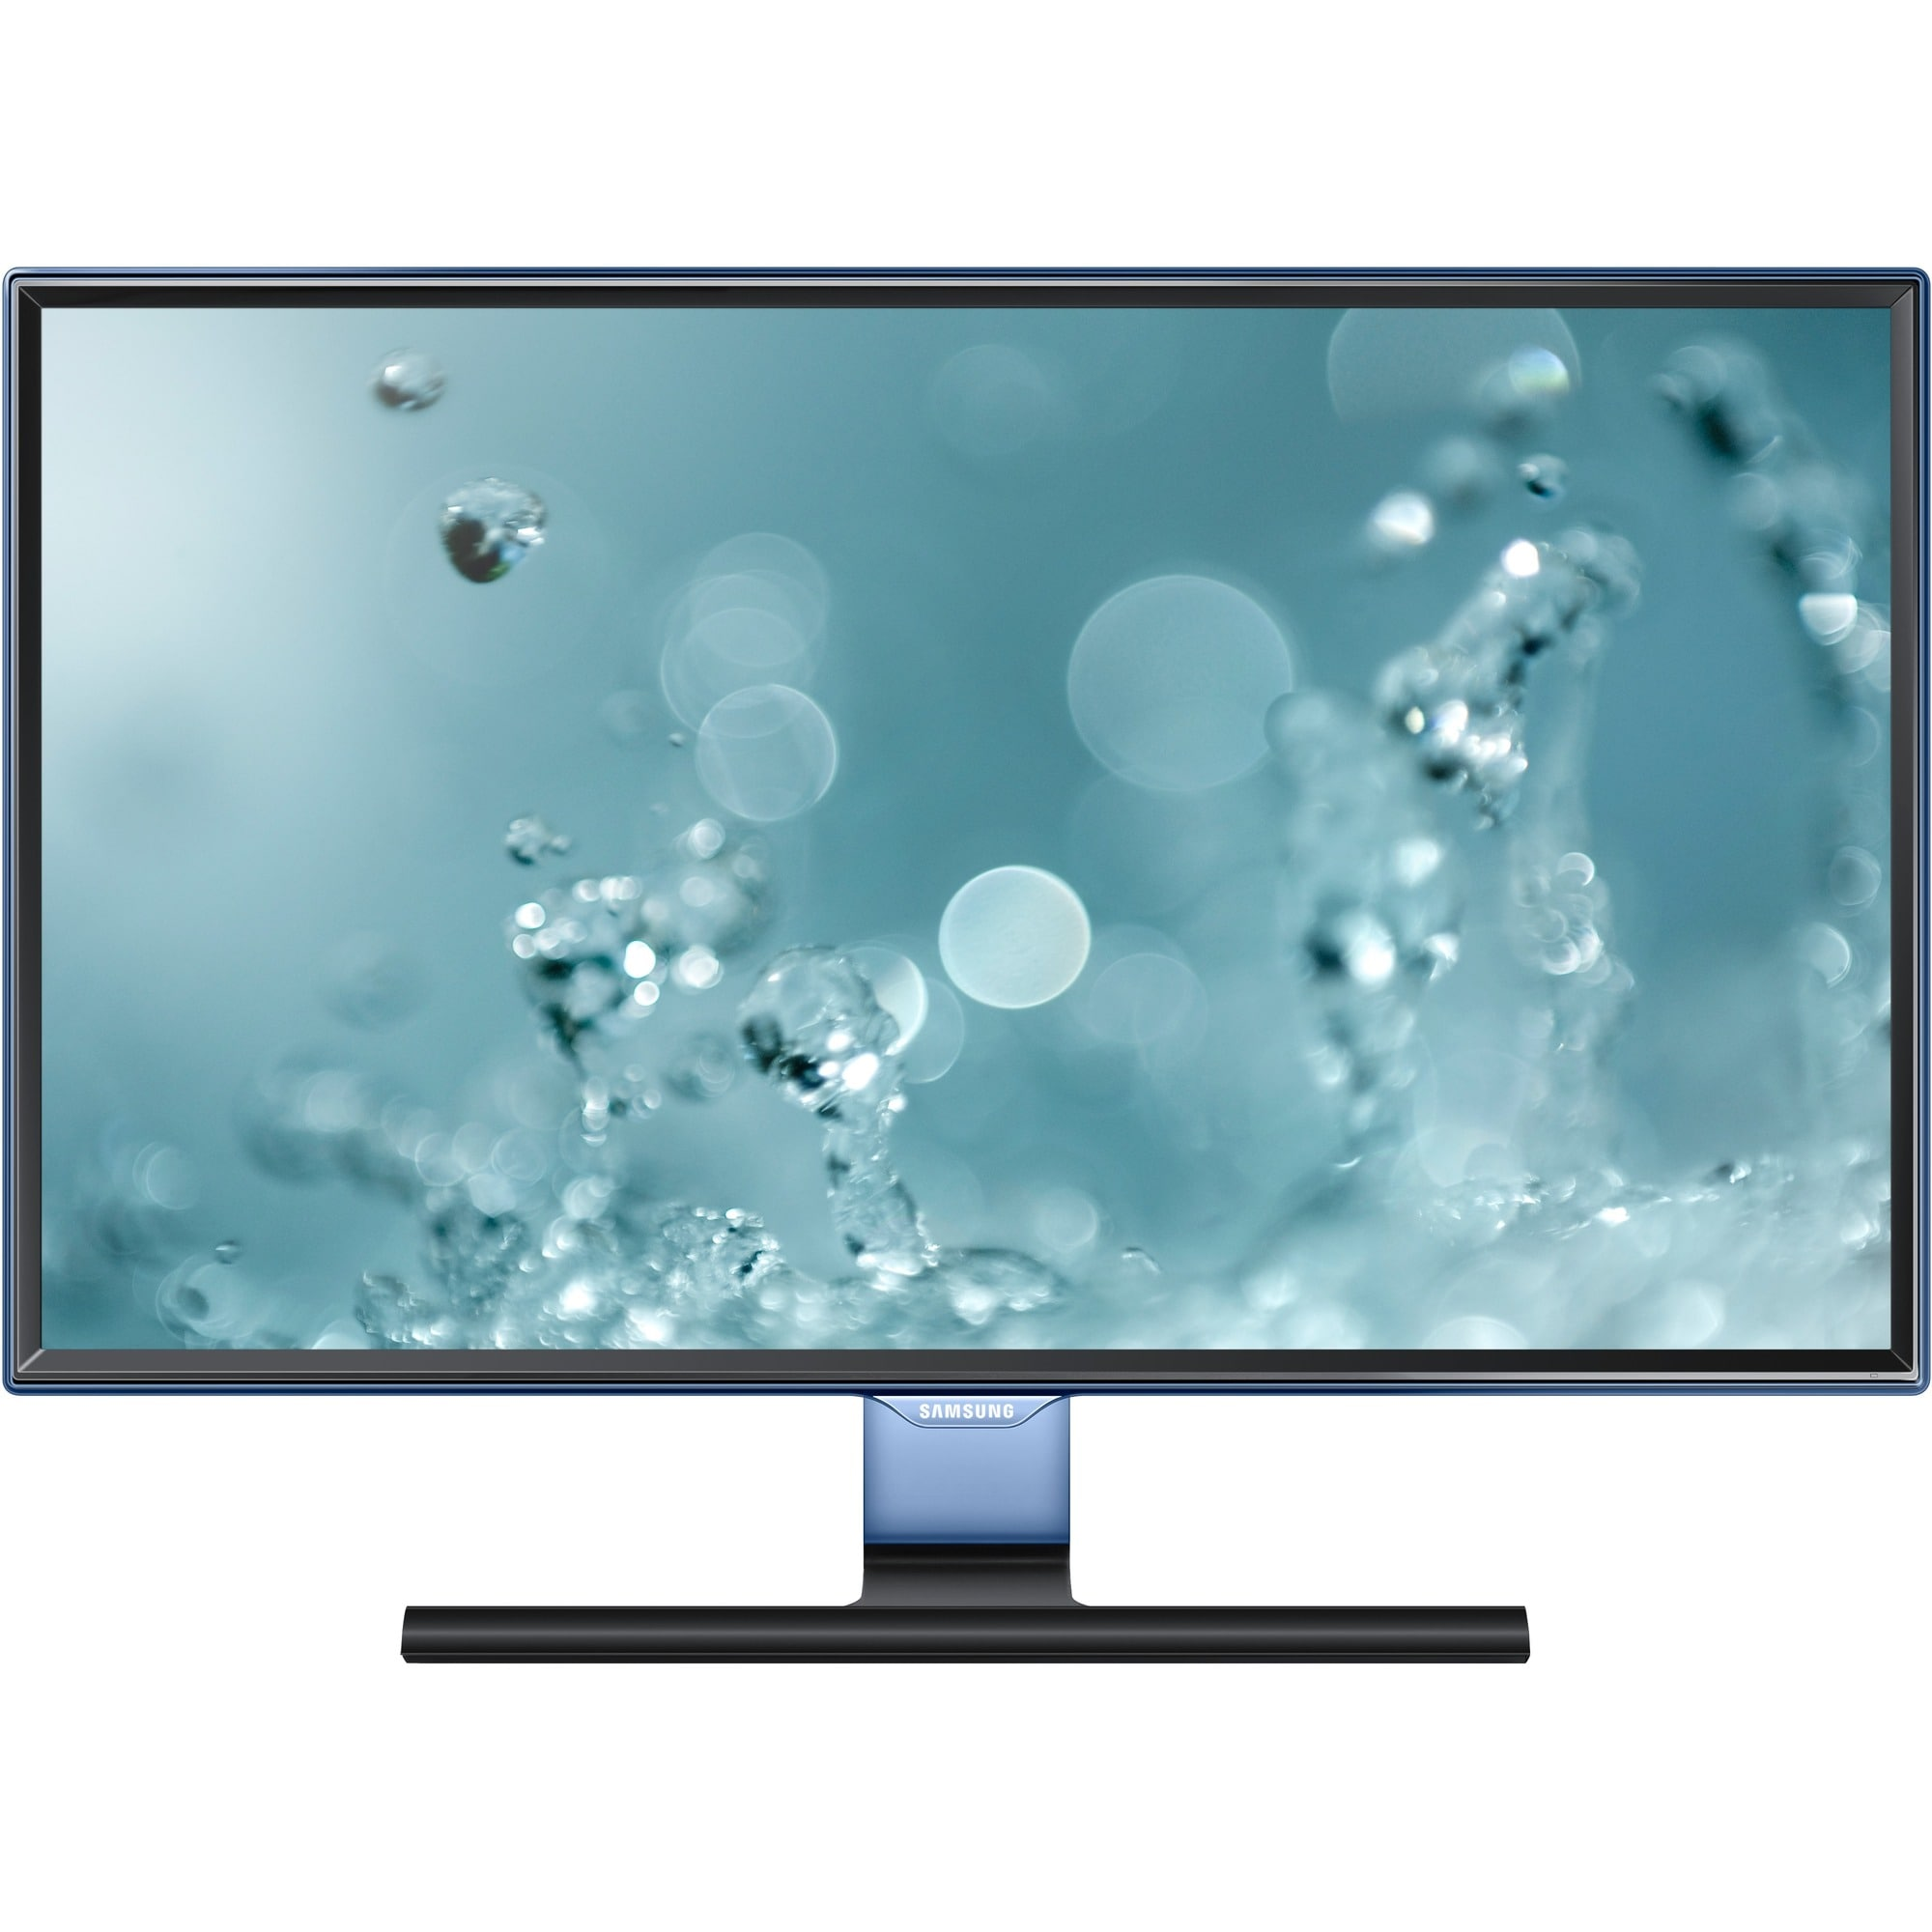 "Samsung S27E390H 27"" LED LCD Monitor - 16:9 - 4 ms"